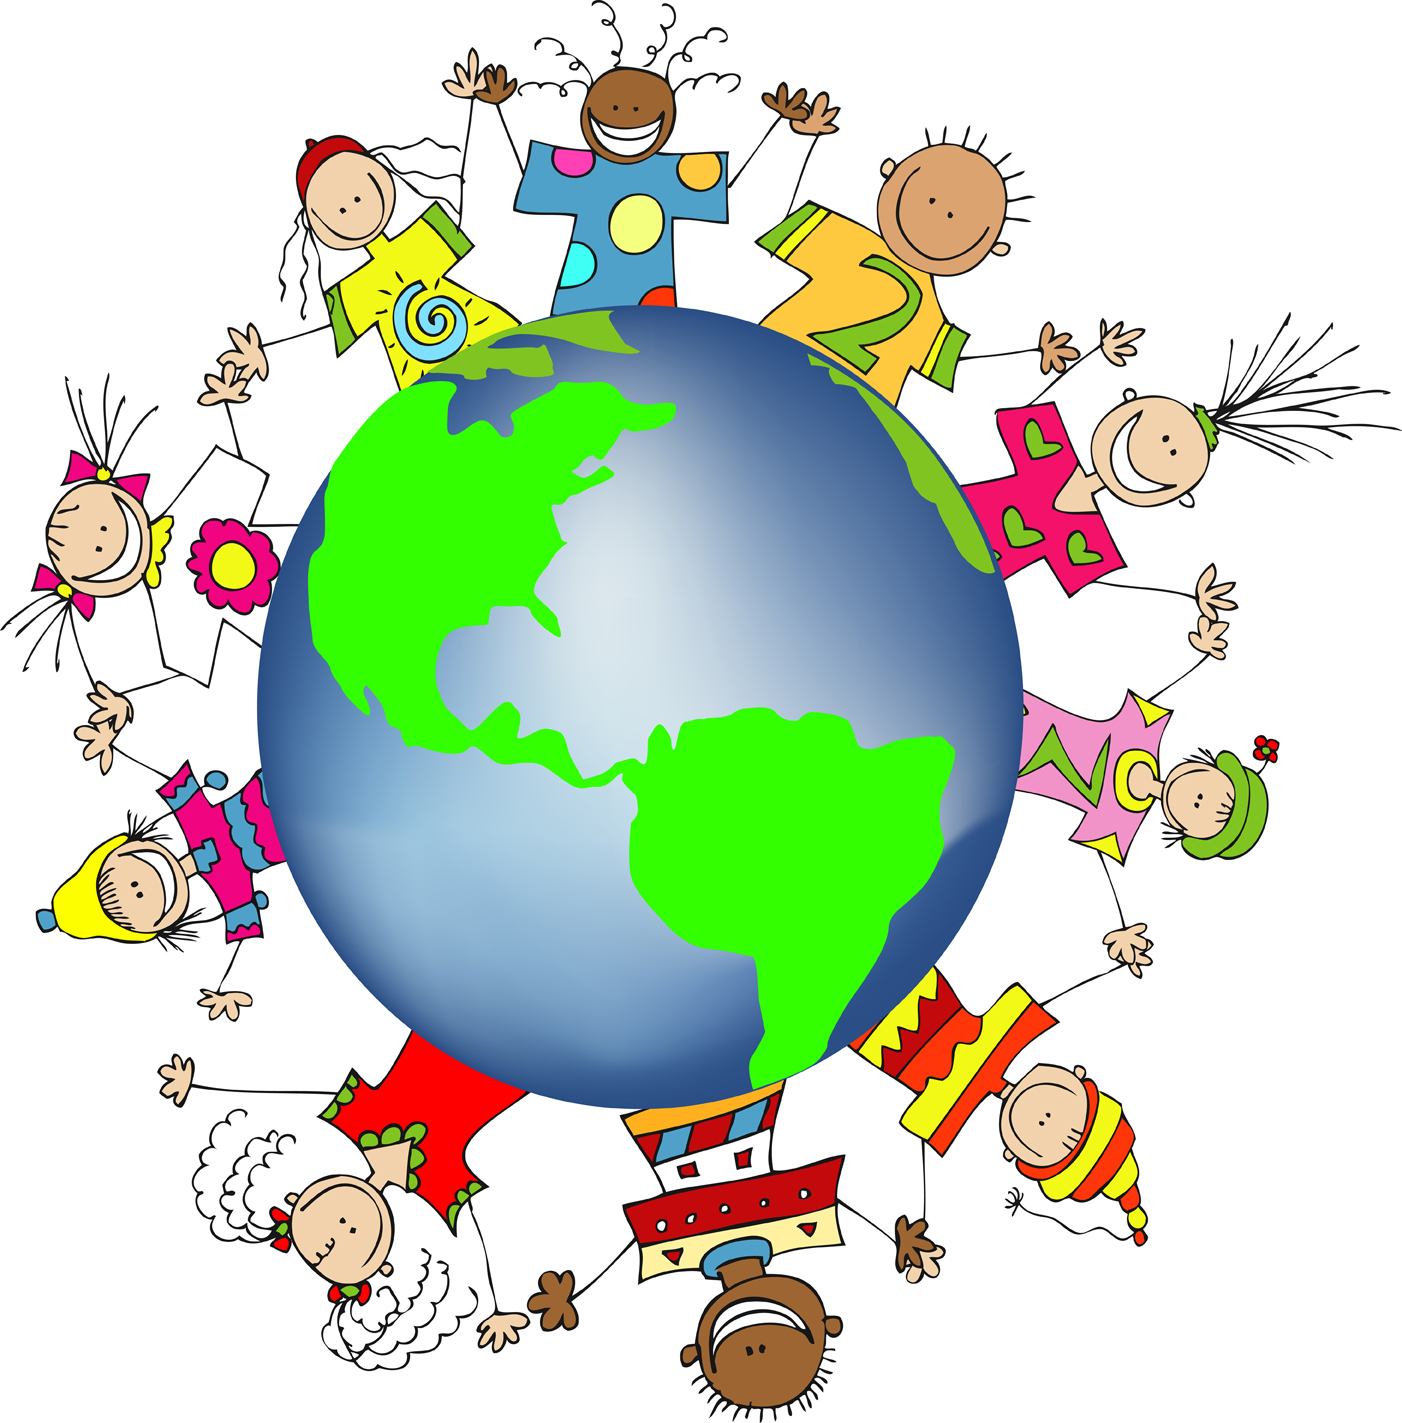 1356315495719090323kids-world-hands-friends-networks-globe-illustration-small